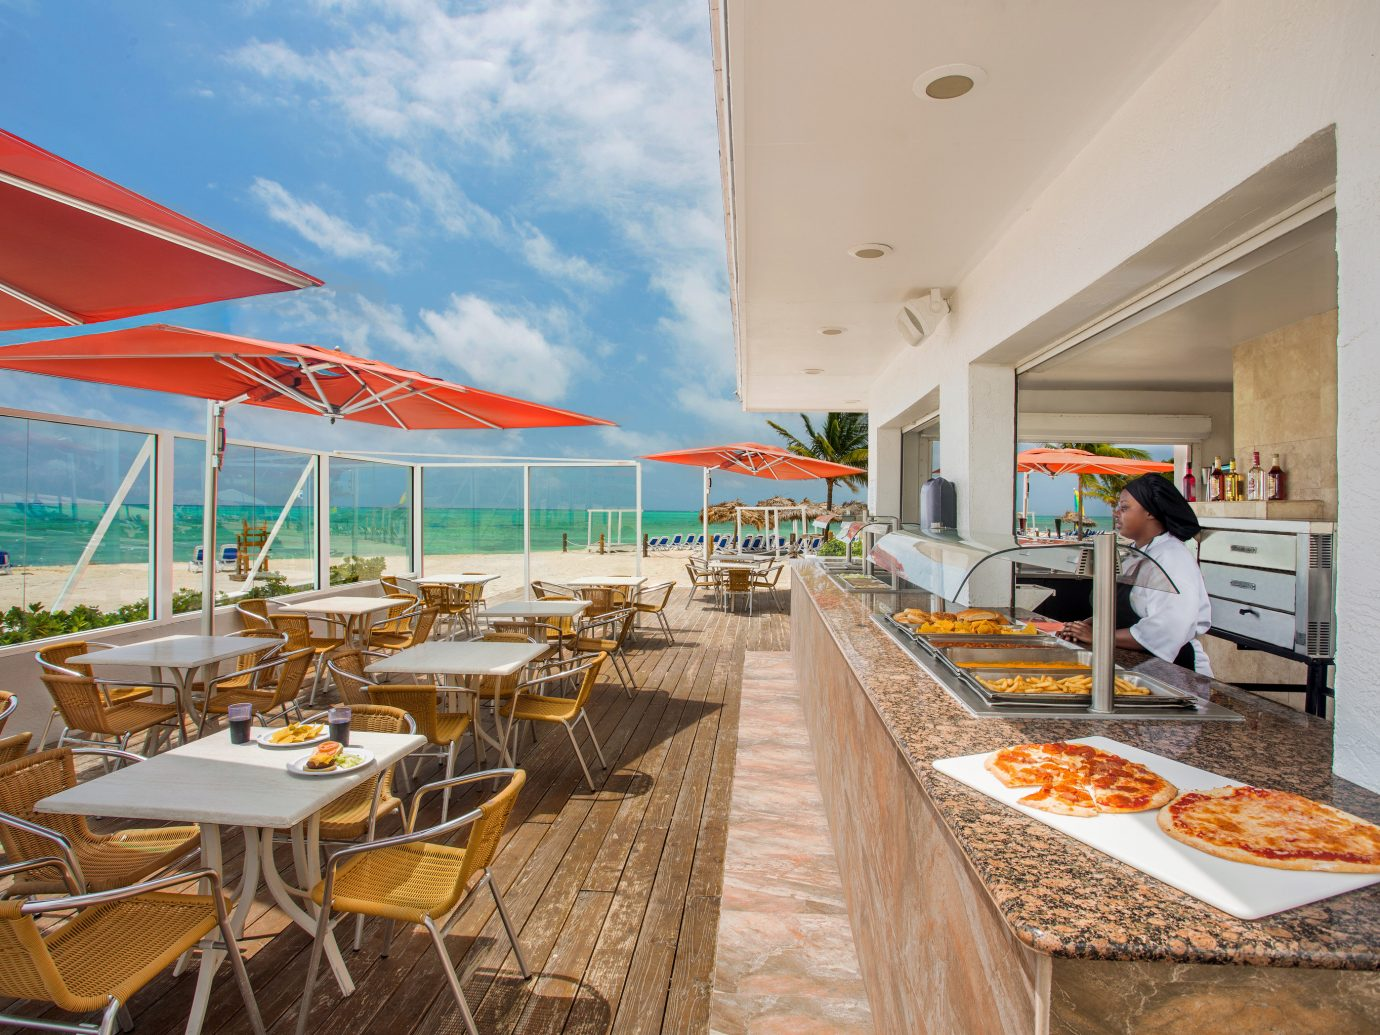 Outdoor restaurant at Viva Wyndham Fortuna Beach